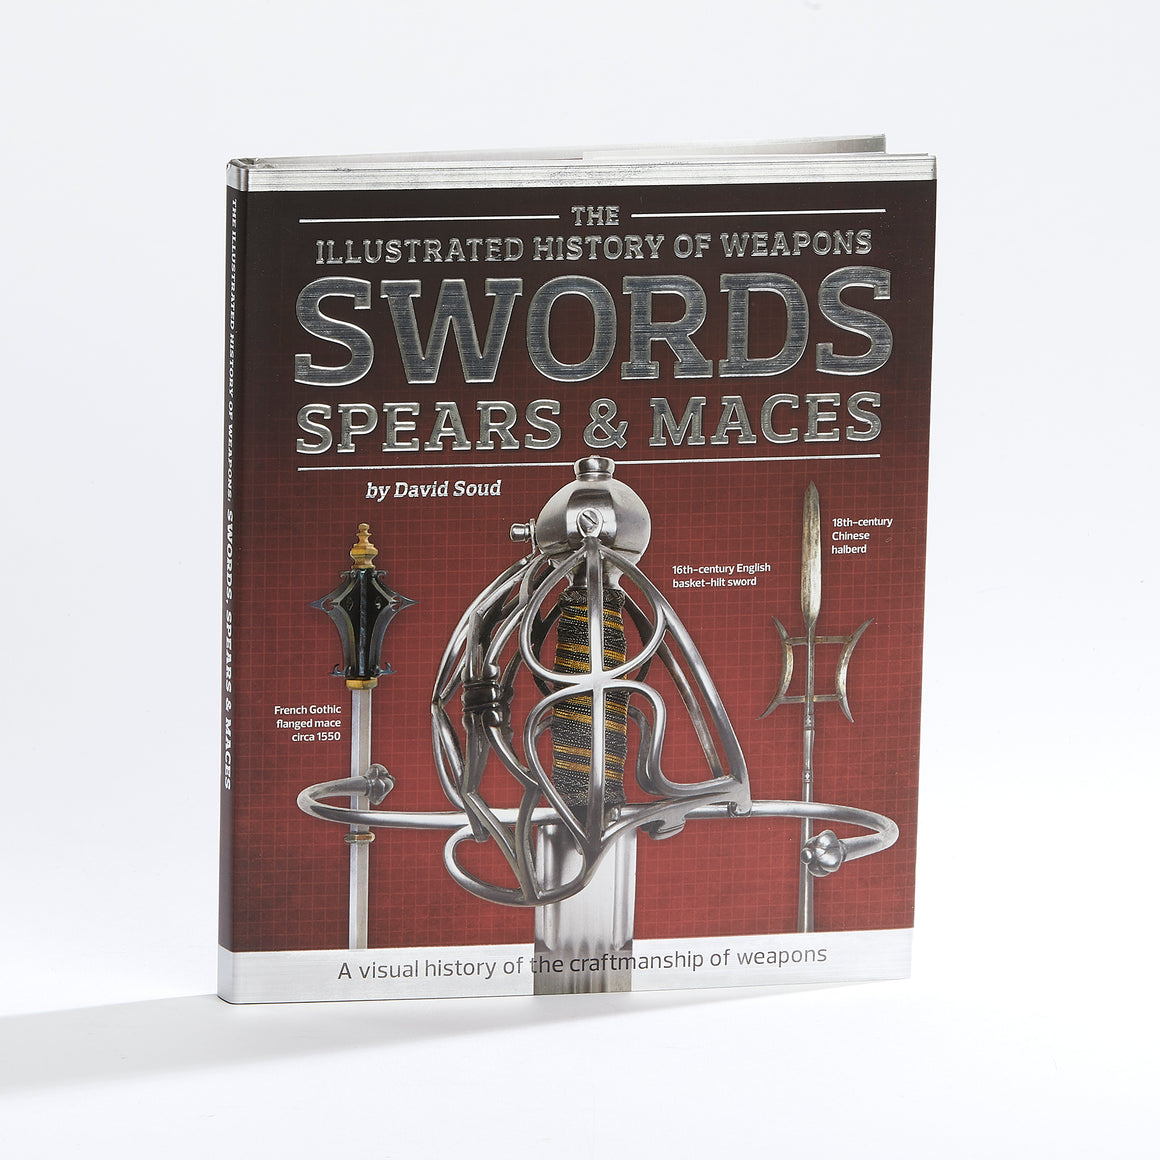 Illustrated History of Weapons: Swords, Spears and Maces